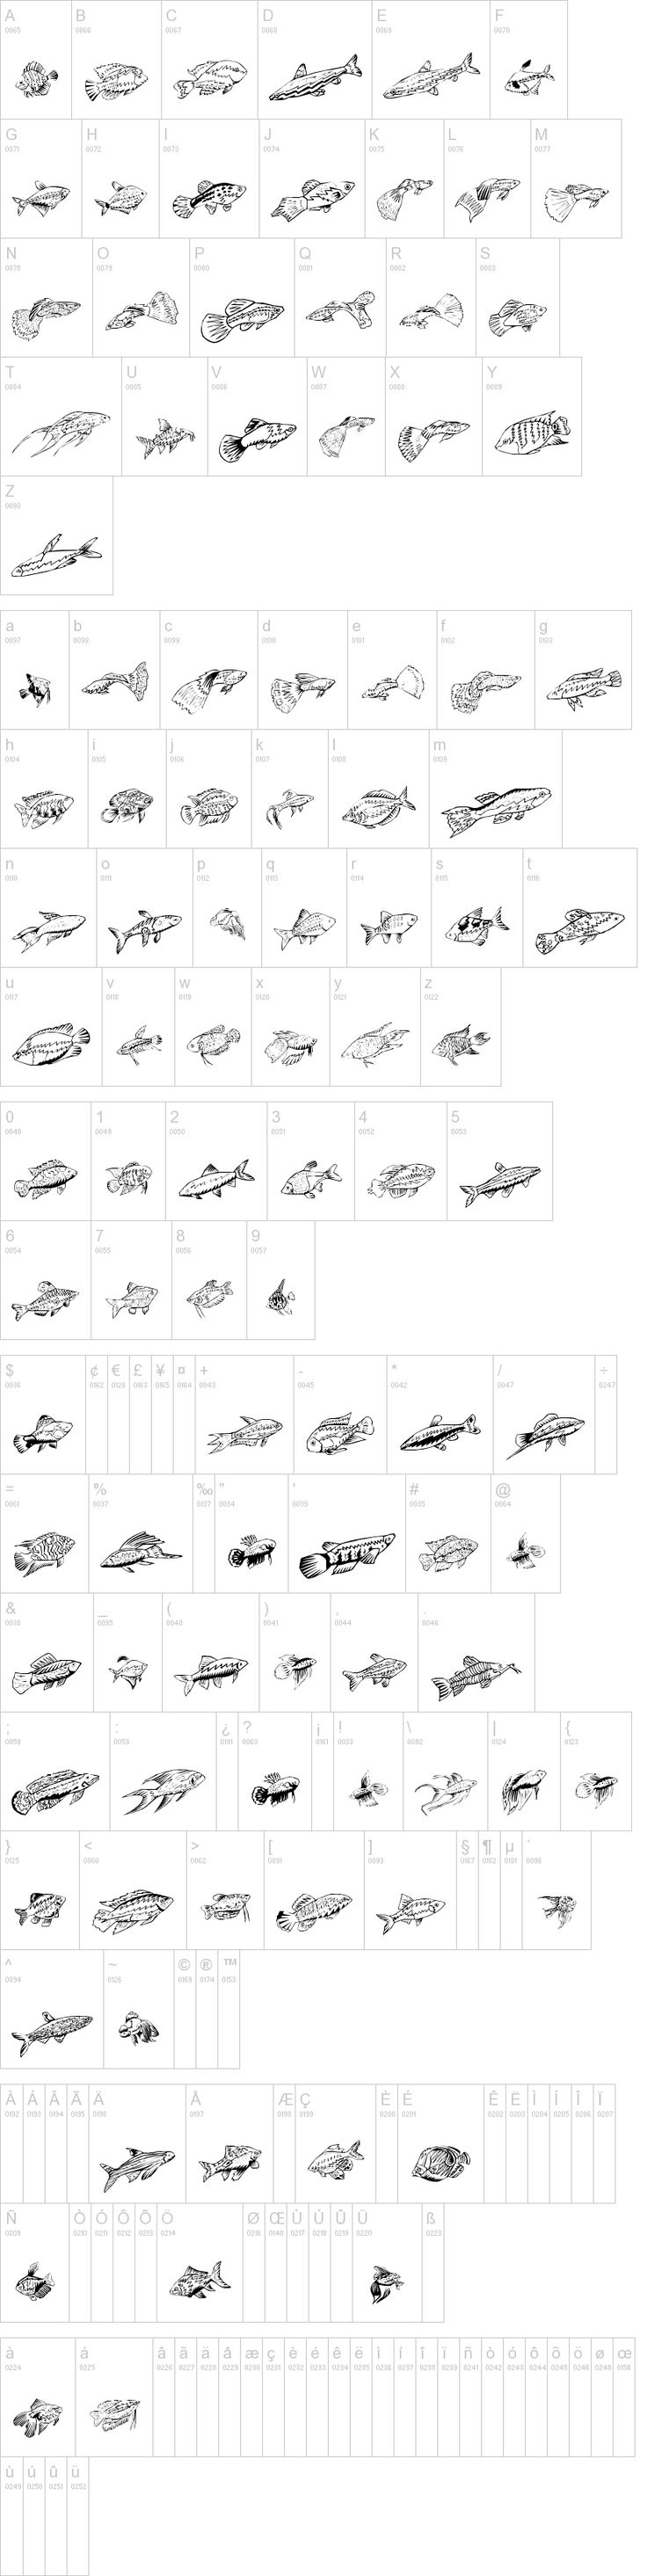 49 best fonts images on Pinterest | Art drawings, Dingbat fonts and ...